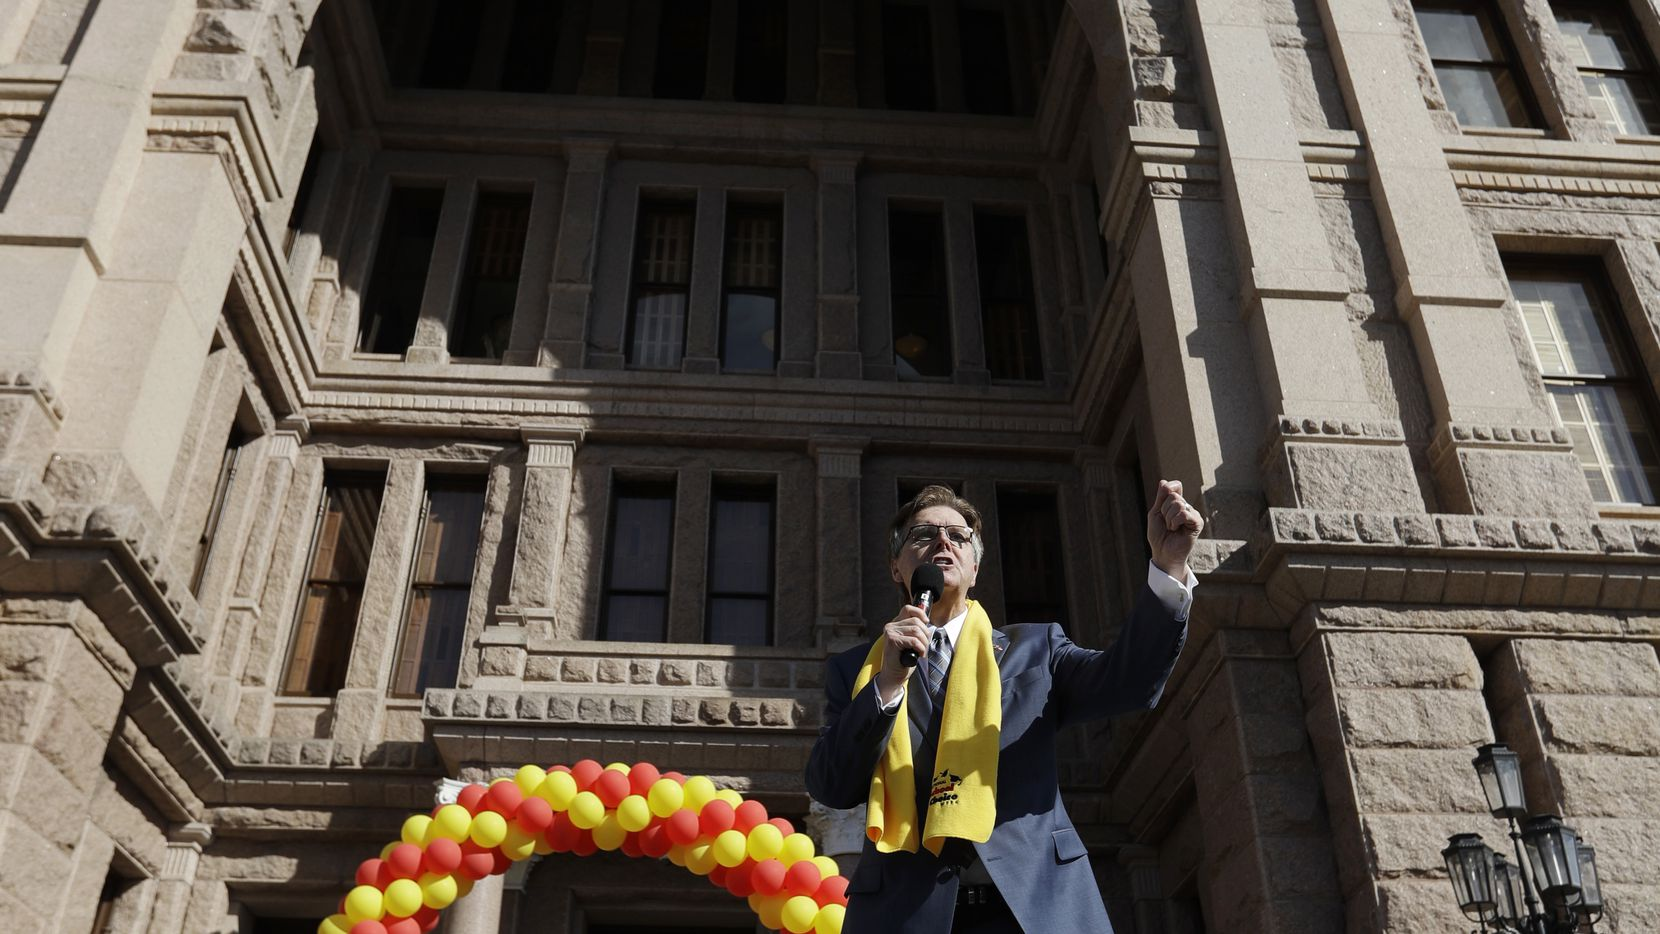 Lt. Gov. Dan Patrick speaks during a rally in support of school choice on the steps of the Texas Capitol, Tuesday, Jan. 24, 2017, in Austin, Texas.